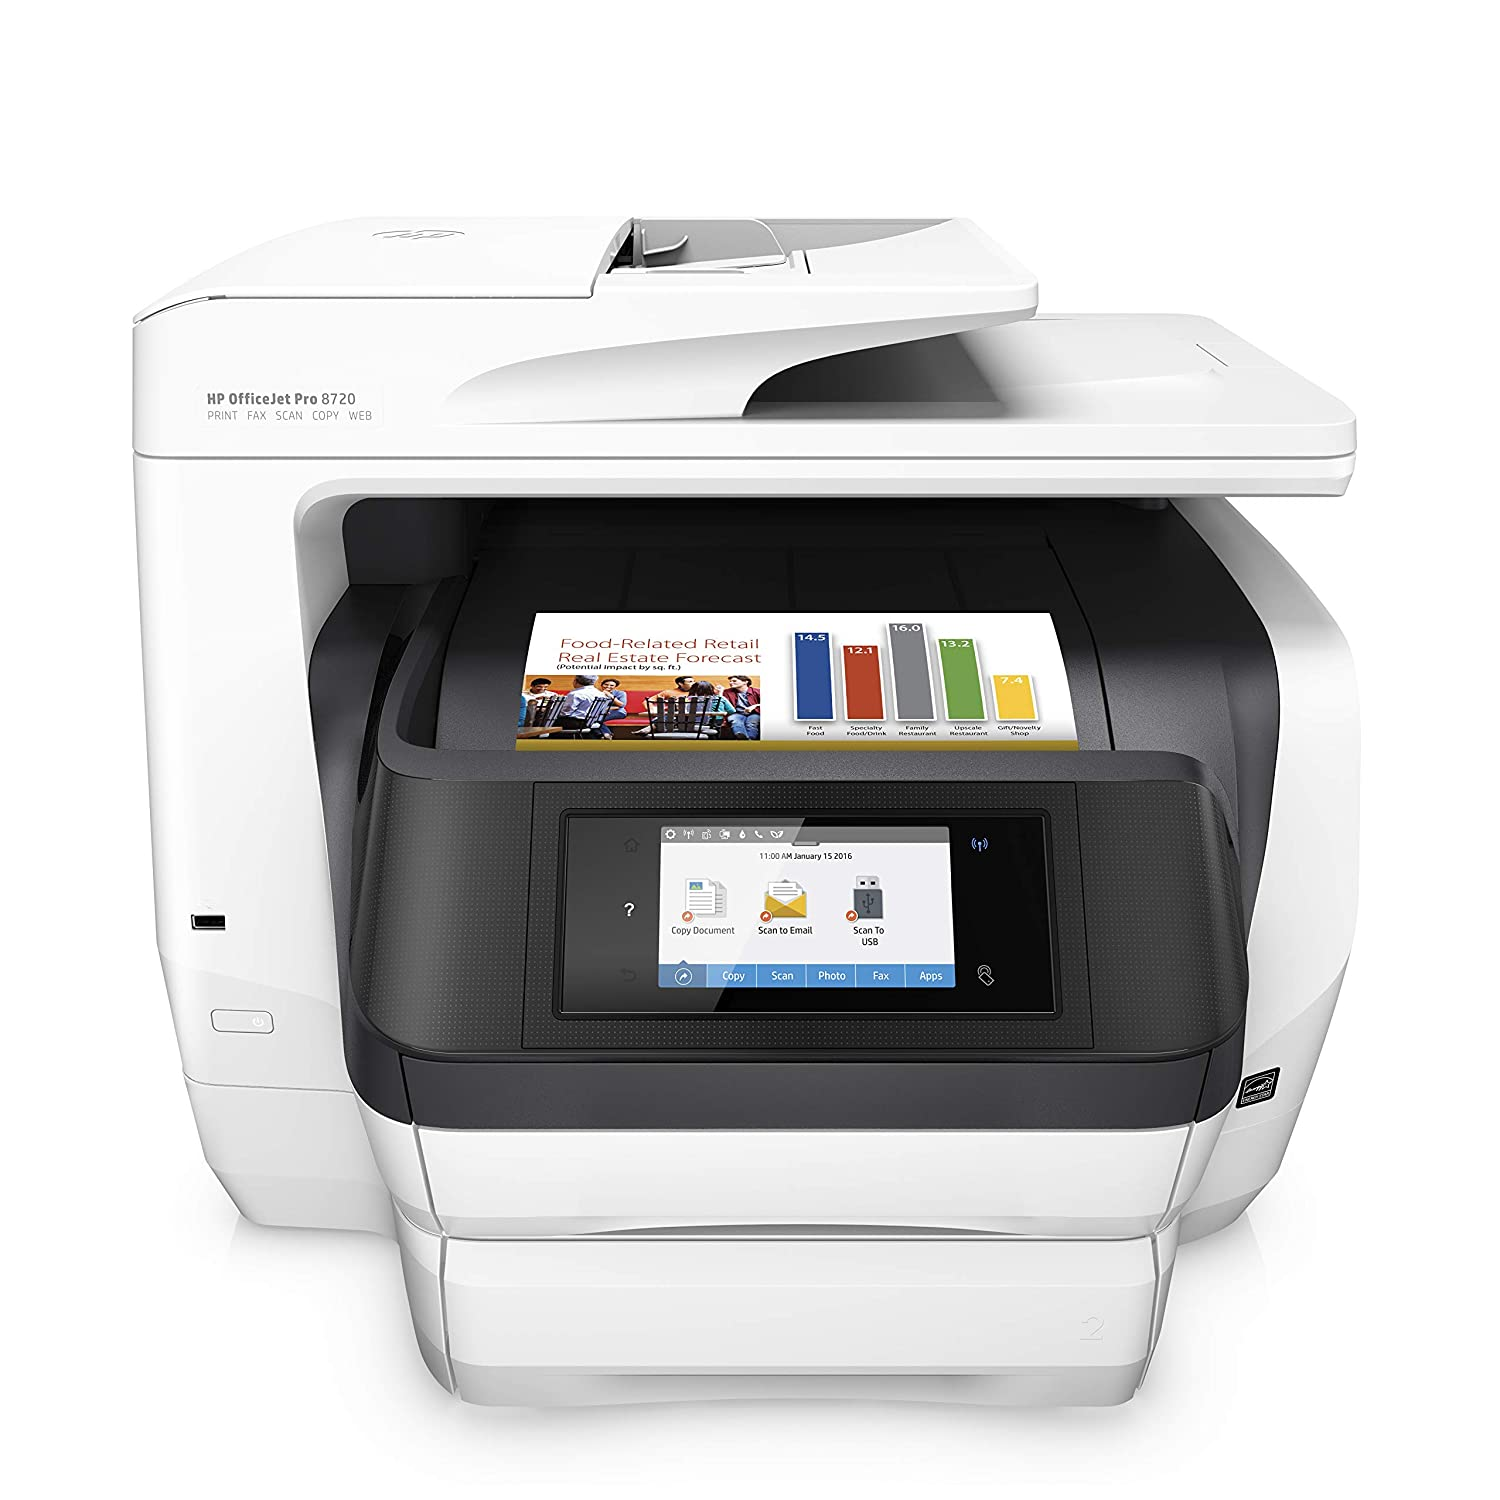 HP M9L75A#B1H OfficeJet Pro 8720 All-in-One Wireless Printer with Mobile Printing, Instant Ink ready - White (M9L75A)